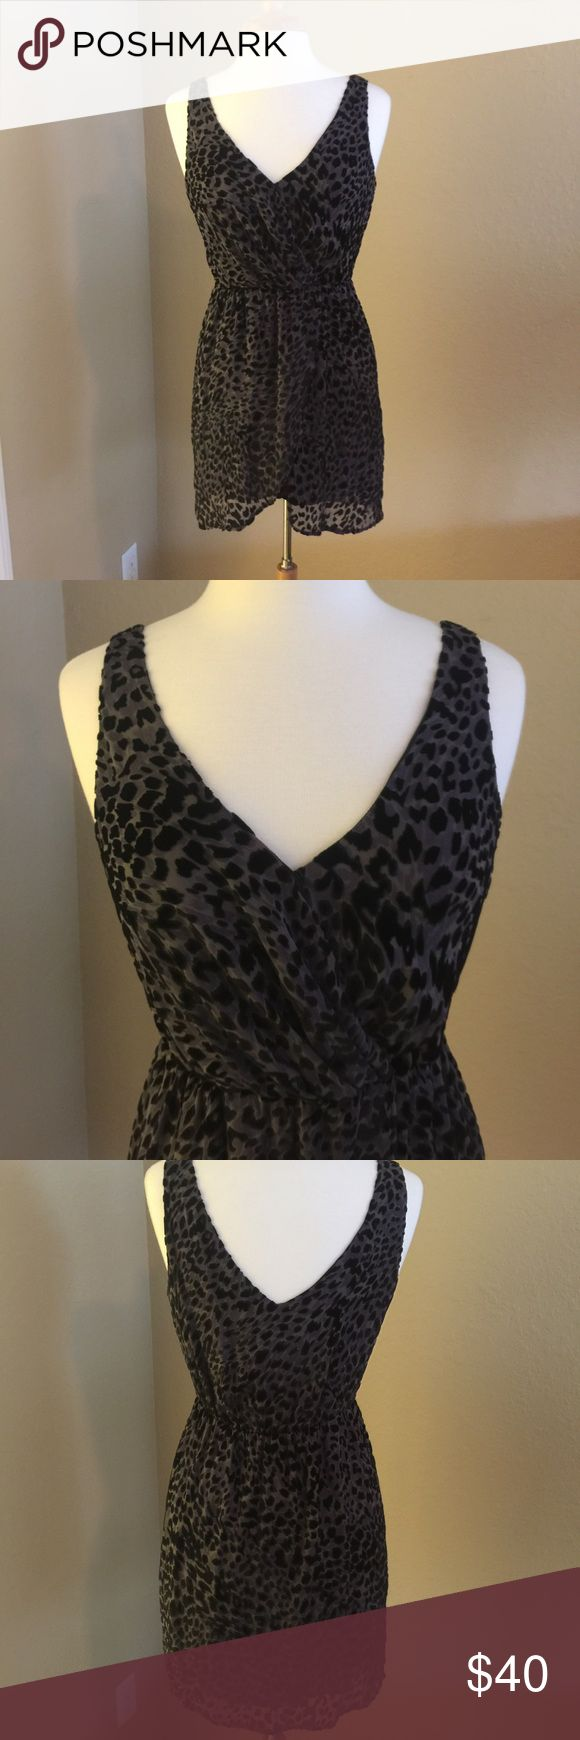 Cocktail dress Gorgeous and Sexyyyy!  Rory Beca animal print  cocktail/special occasion dress . Lightweight burnout velvet and chiffon fabric, elastic waist, faux wrap style. Excellent condition! Nonsmoking **** Rory Beca Dresses Mini